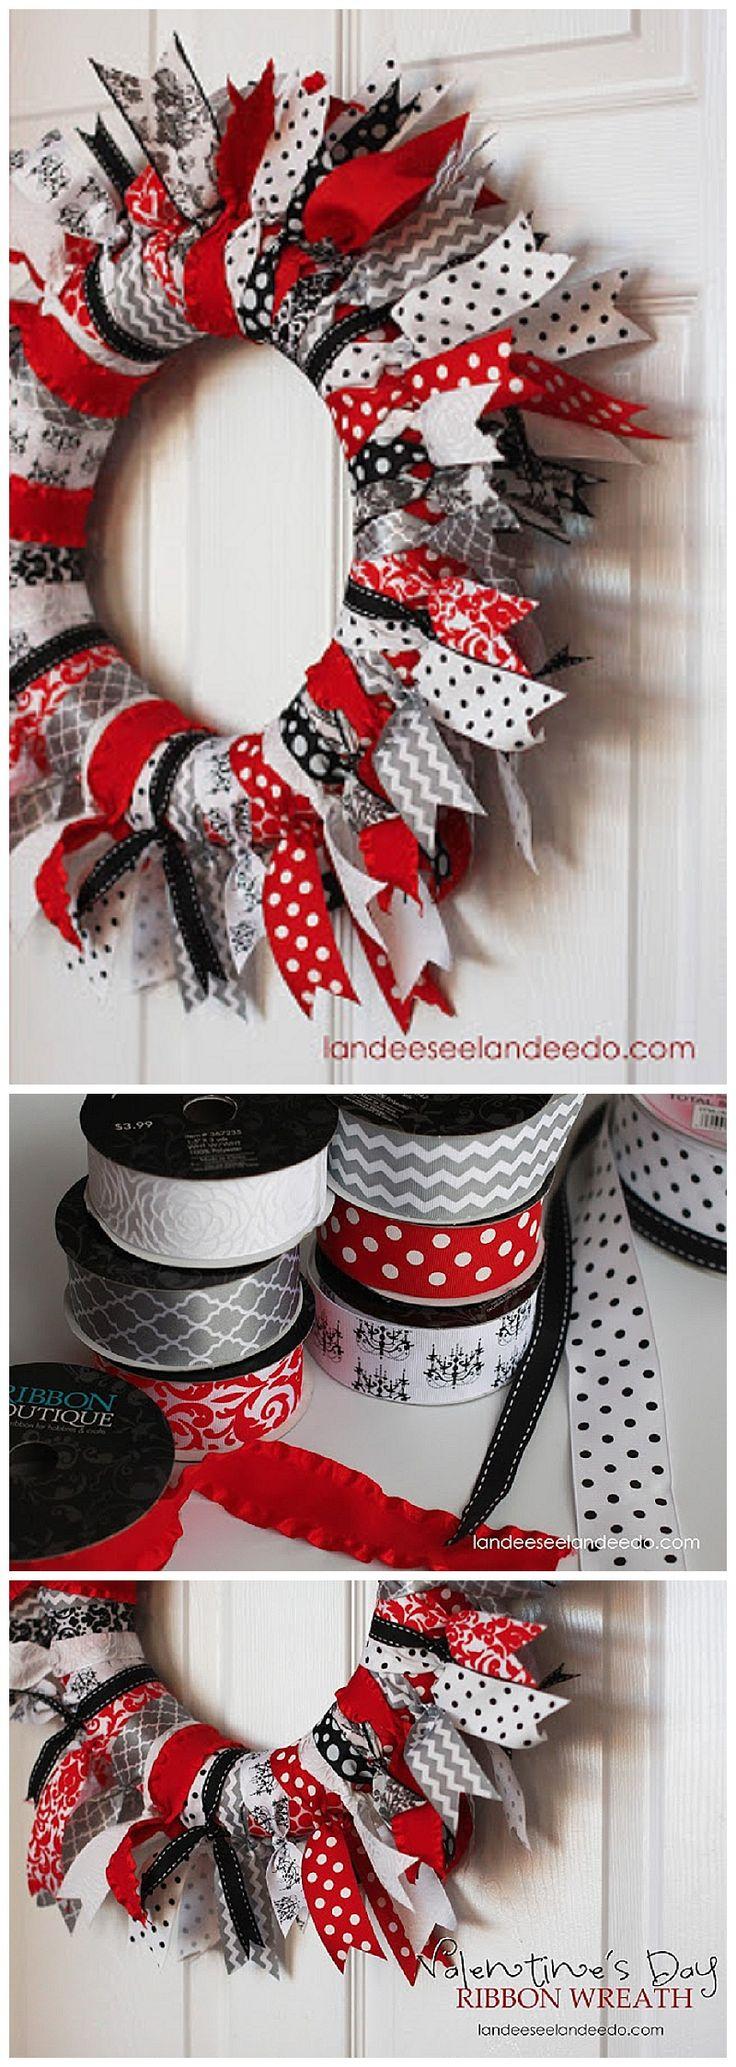 Easy DIY Valentine's Day Ribbon Wreath Decoration Tutorial